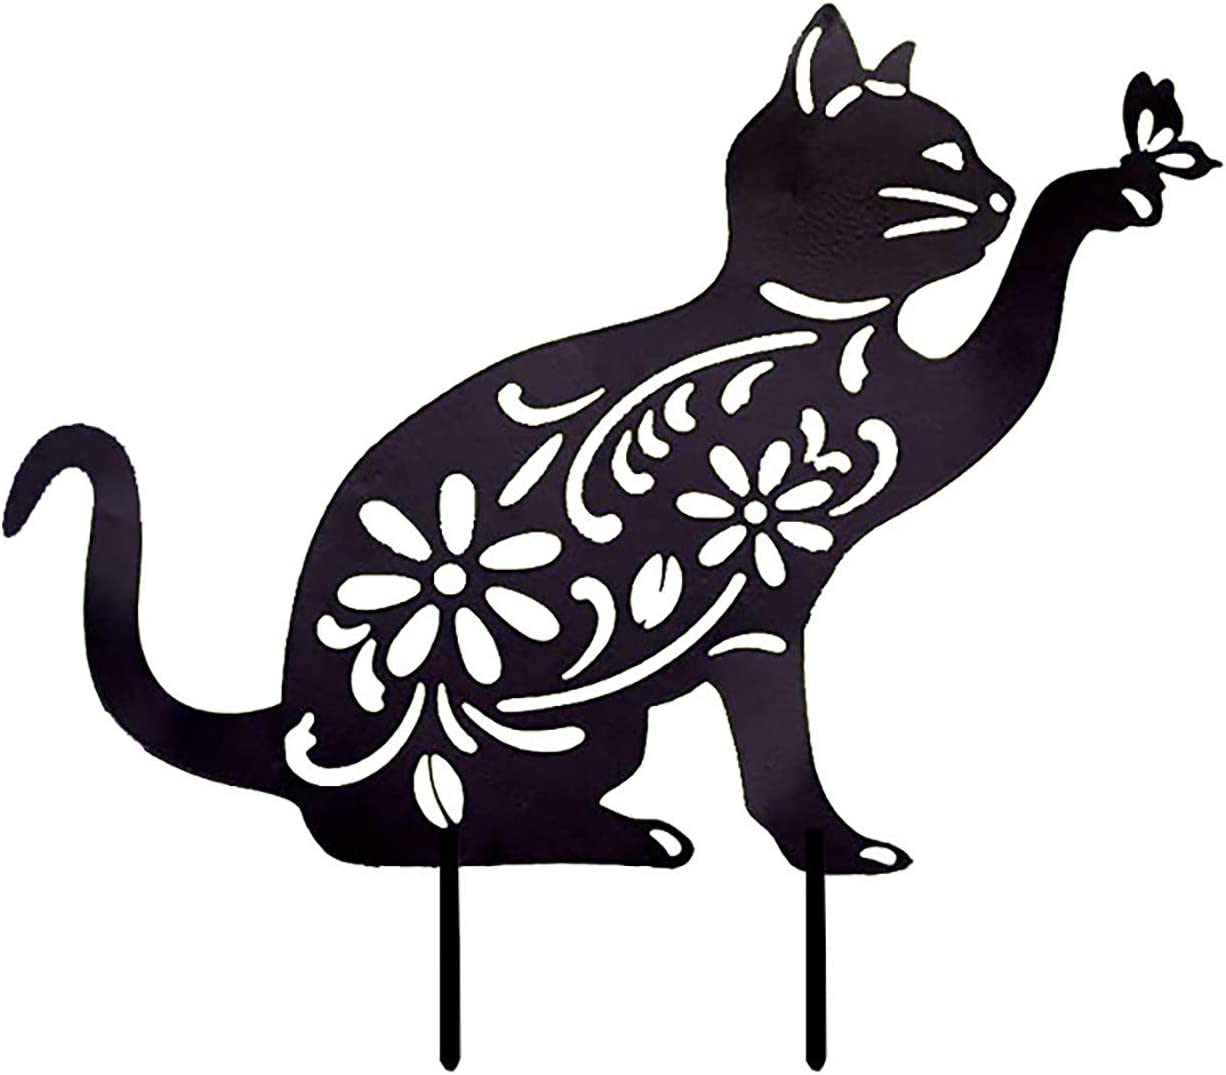 ASkinds Cat Garden Stake Acrylic Cat Yard Art Black Hollow Cat Stake Decorative Kitten Ornament Cat Silhouette Statue for Home Outdoor Lawn Garden